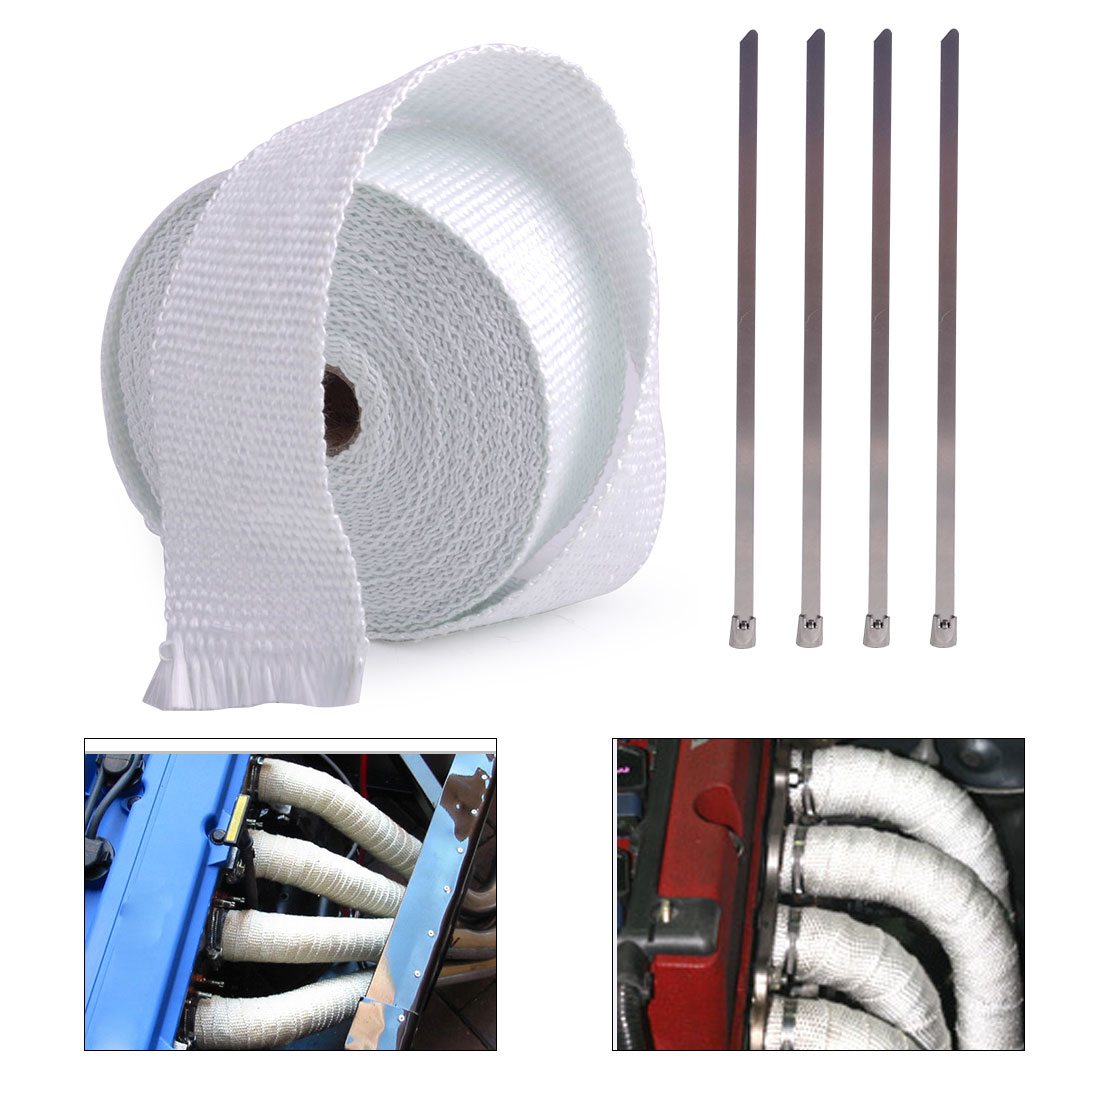 beler 10M Exhaust Pipe Manifold Header Heat Wrap Tape Roll With 4 Metal Ties Cable Zip for Harley Bobber Chopper Dirt Bike Honda